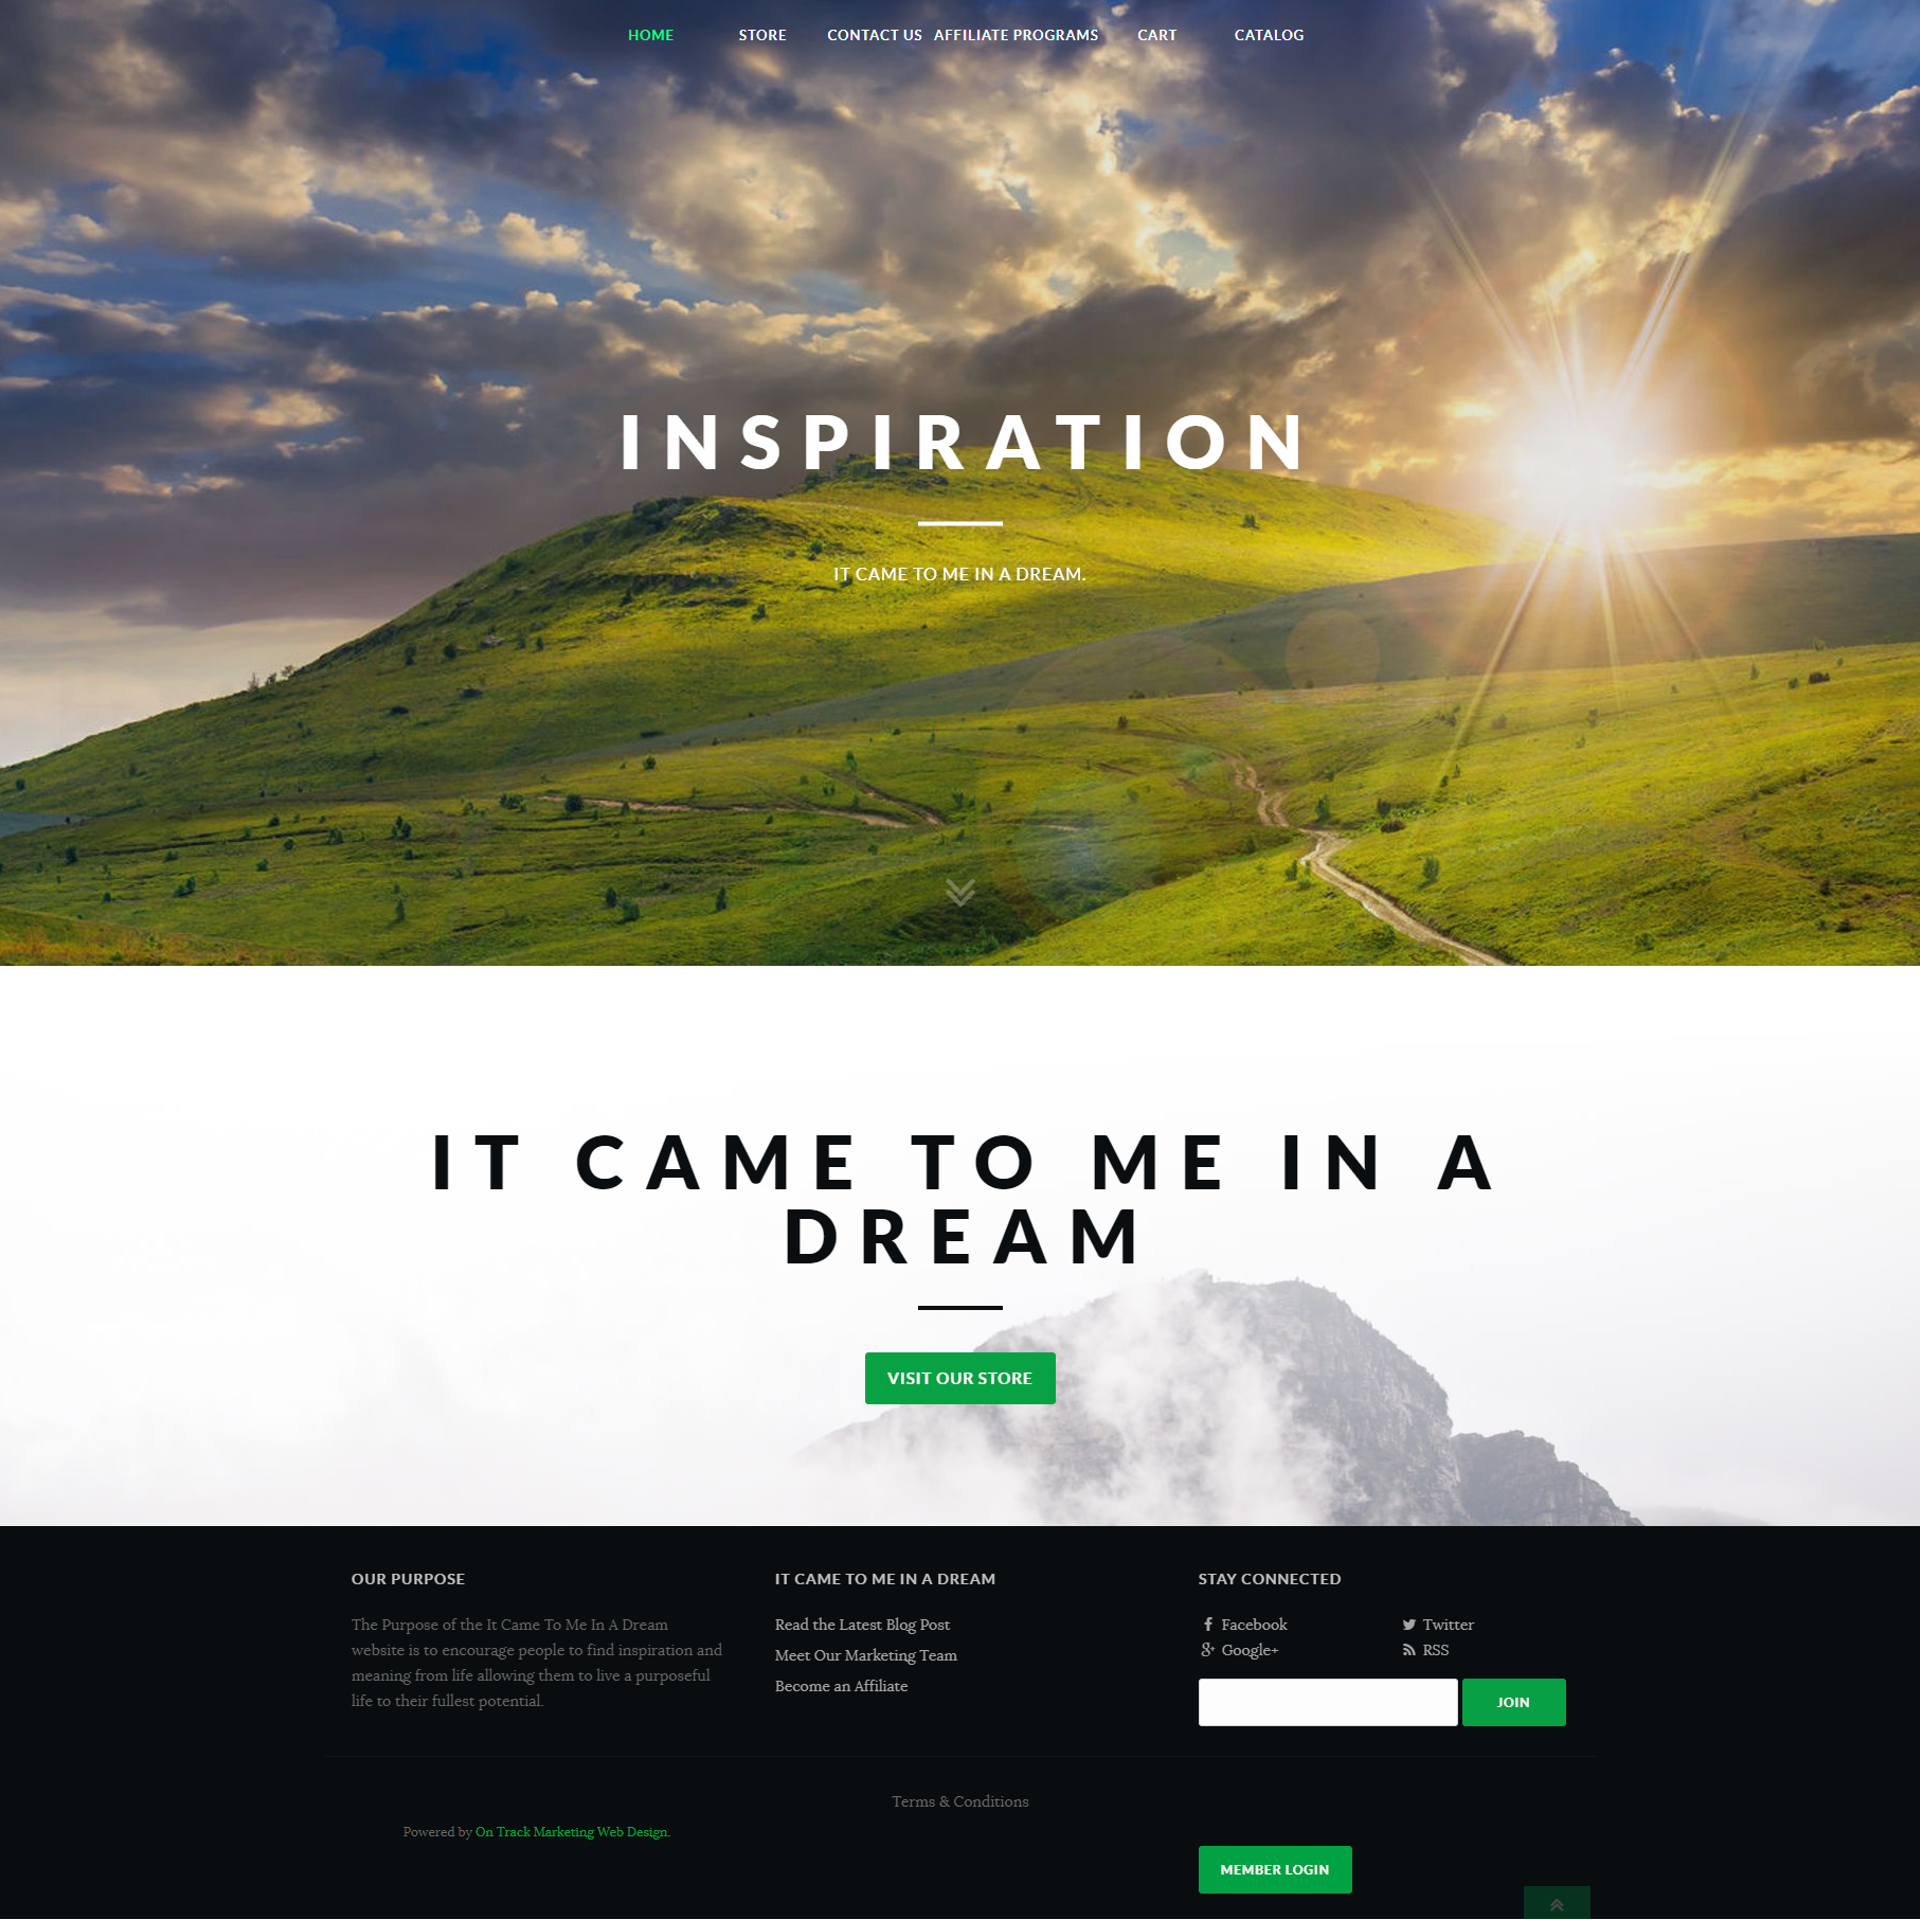 It Came To Me In a Dream Website Design and Development